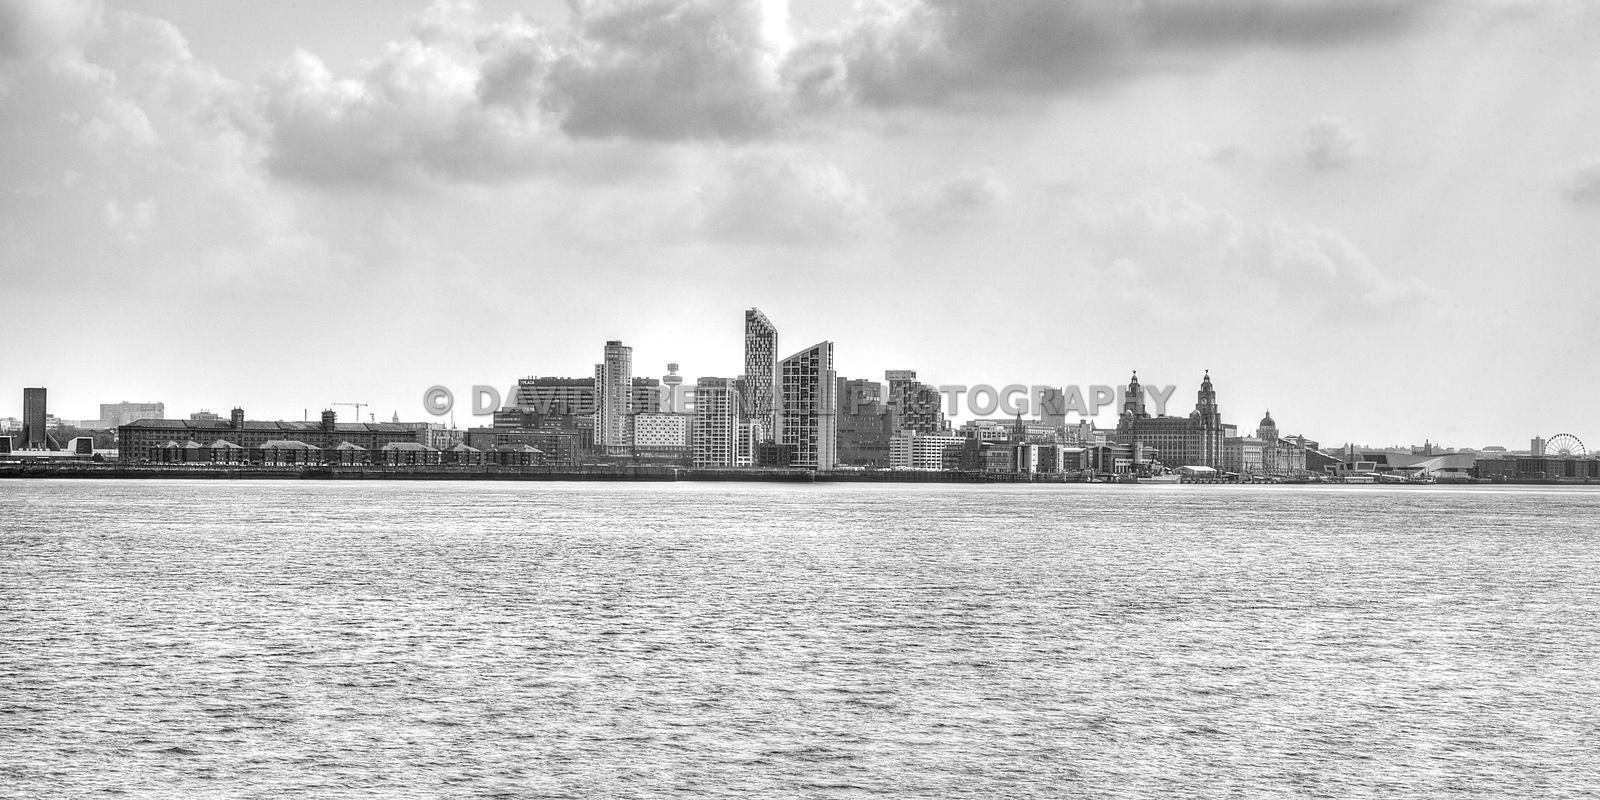 Liverpool From The Wirral (monochrome)